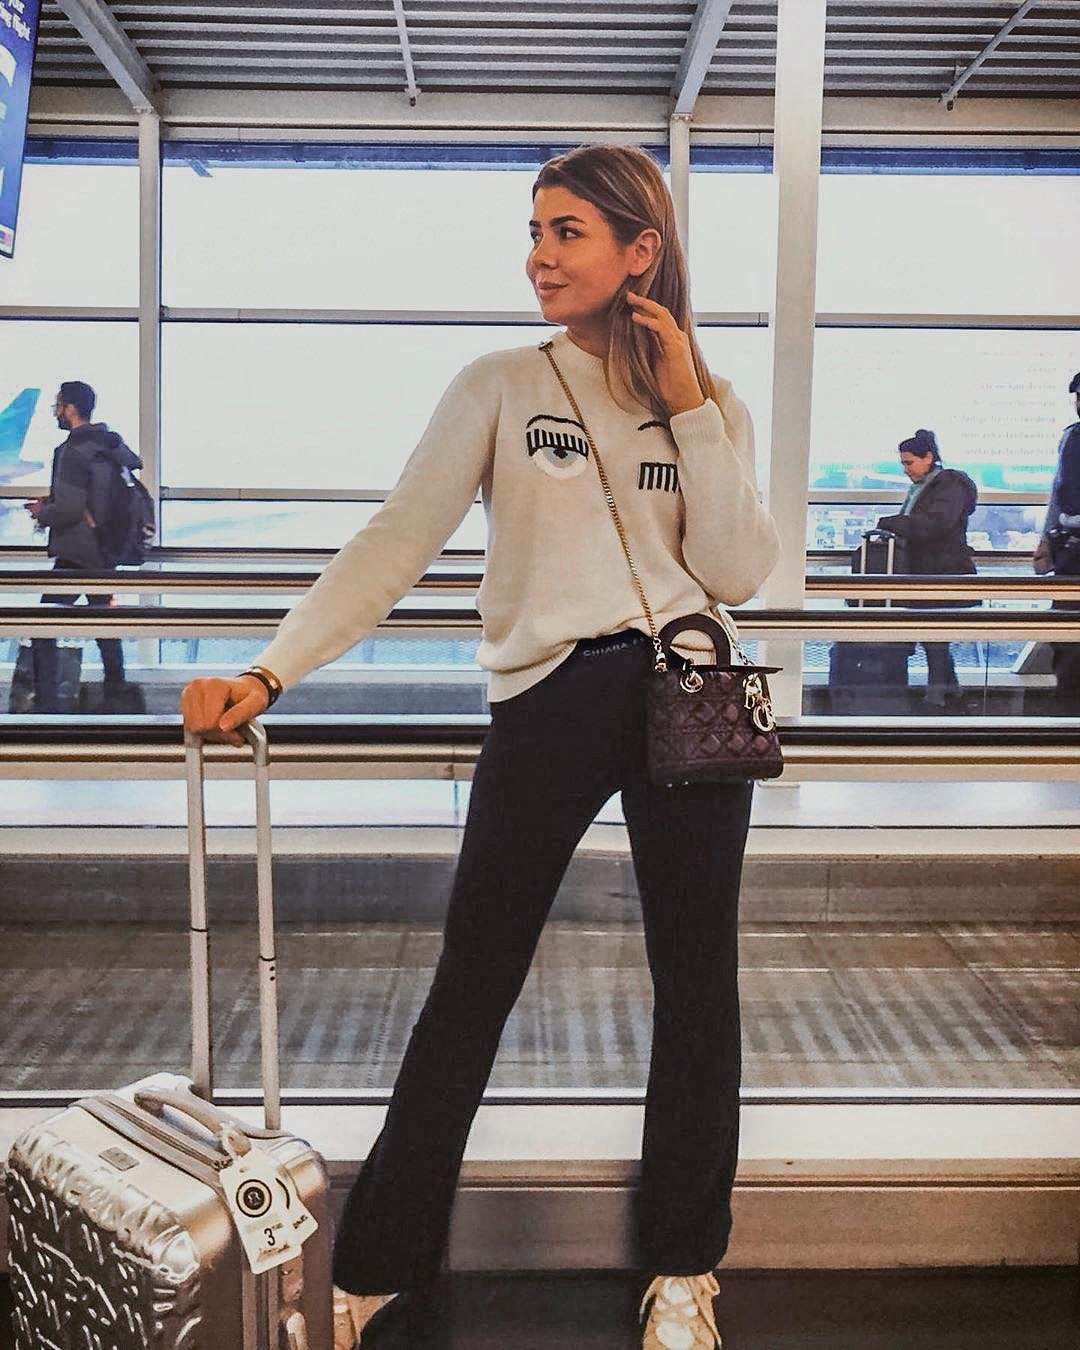 Airport Essentials: Cream Sweater, Black Jogger and Camel Sneakers 2021